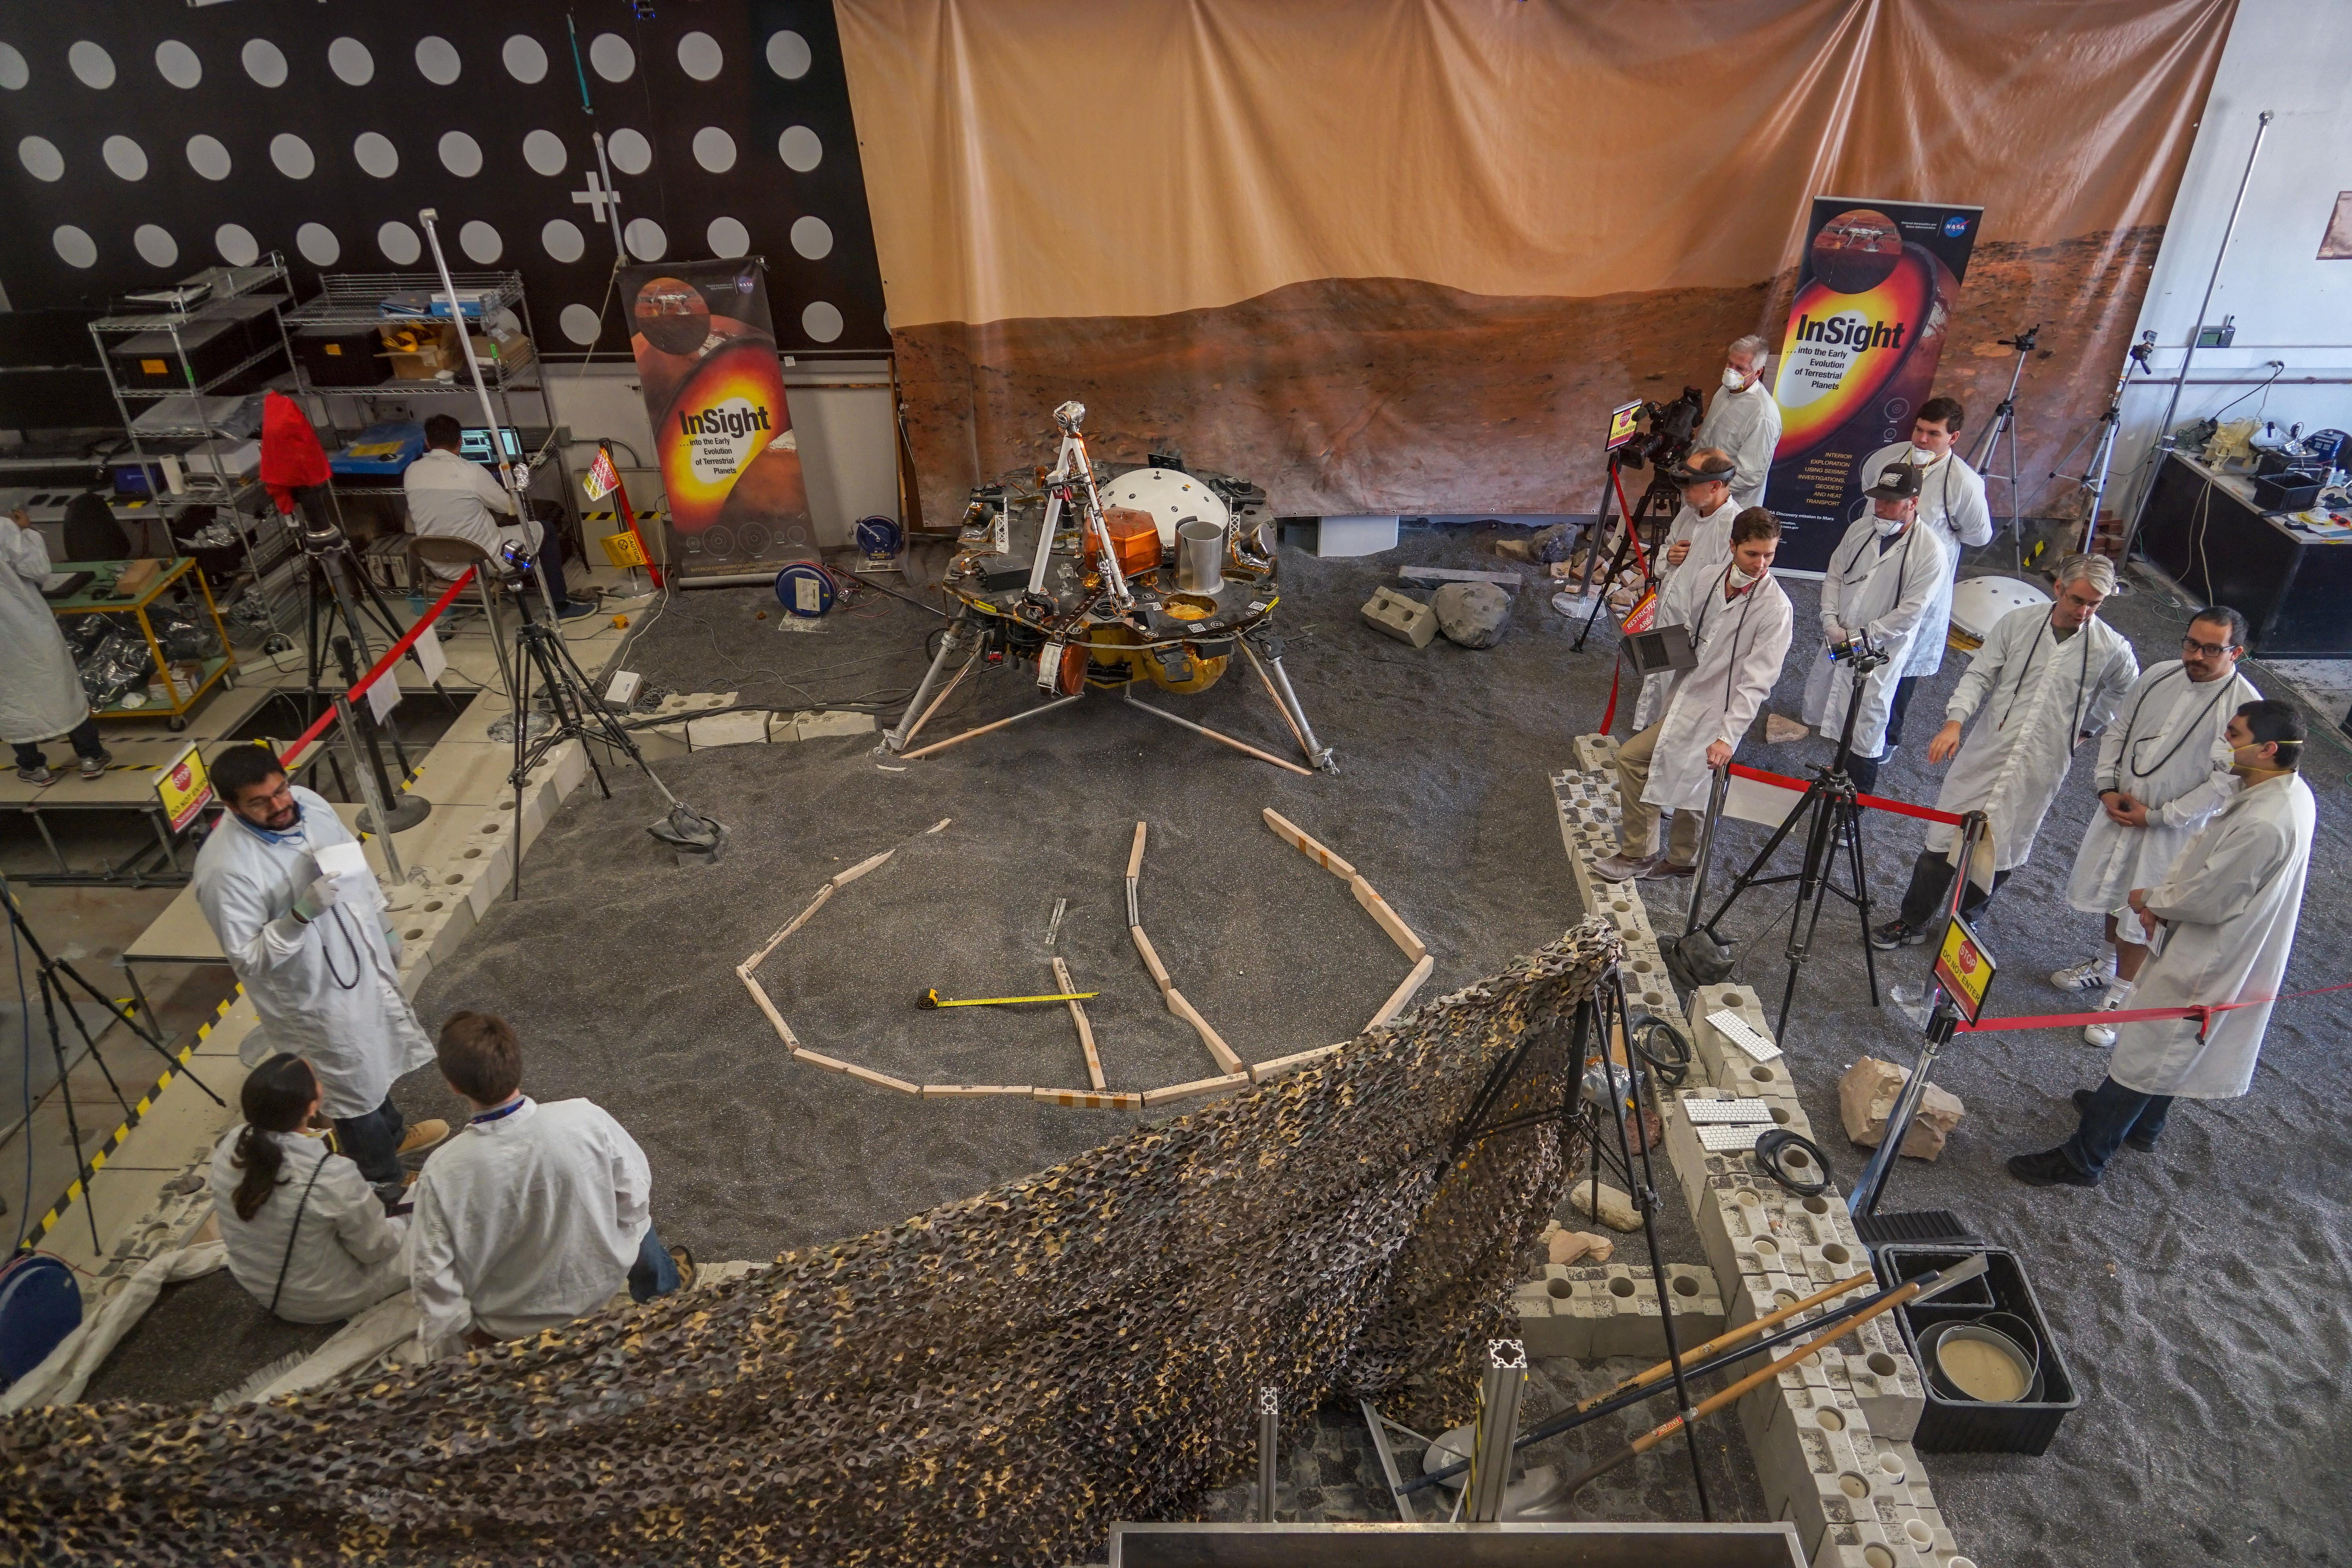 Engineers in Pasadena, California, sculpt a gravel-like material to mimic the terrain in front of NASAs InSight lander on Mars.